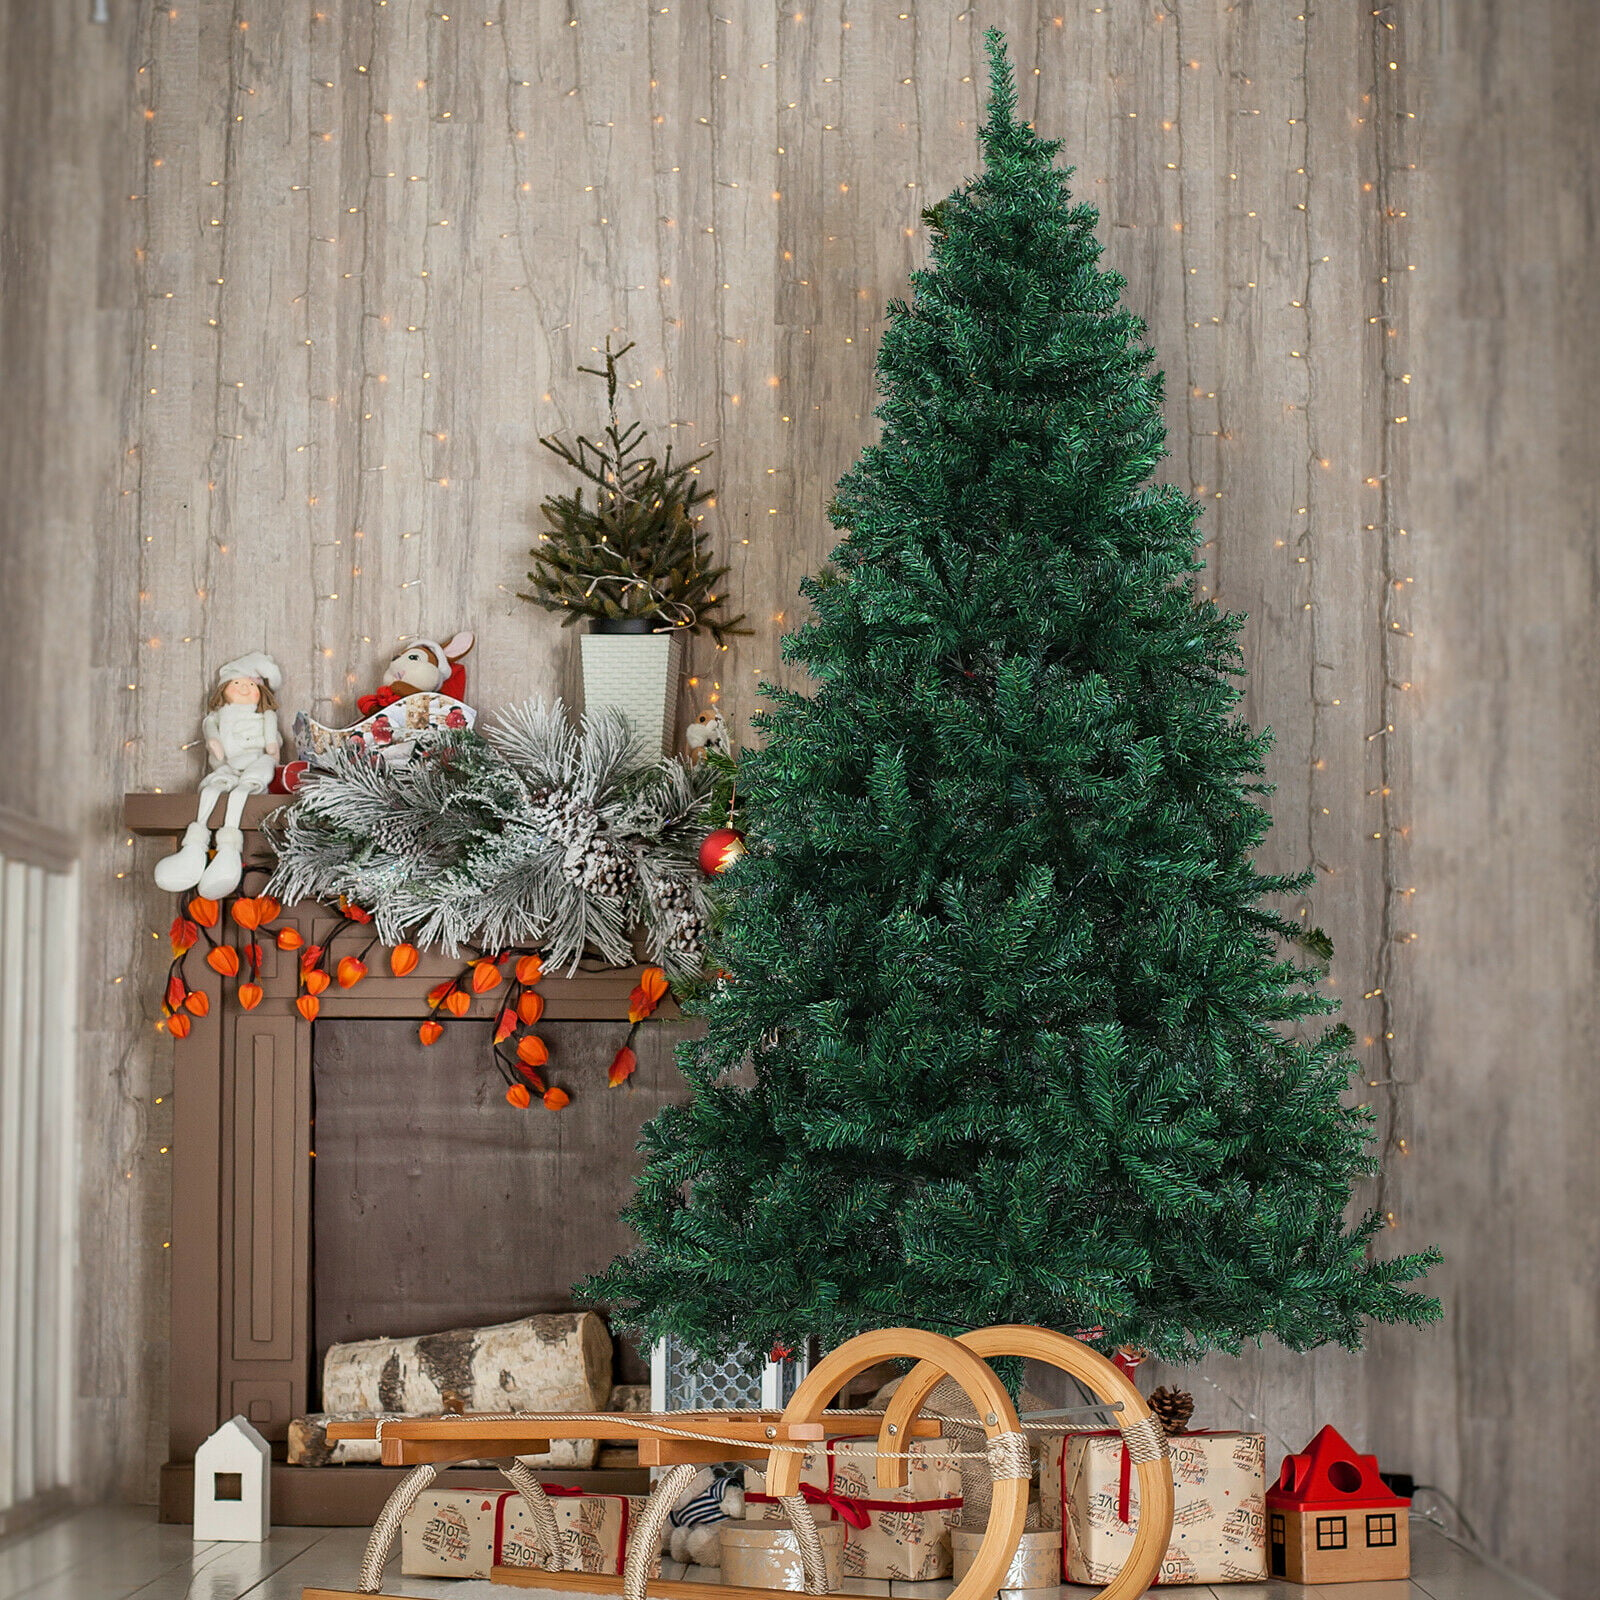 6' Unlit Spruce Artificial Christmas Tree with Metal Stand ...